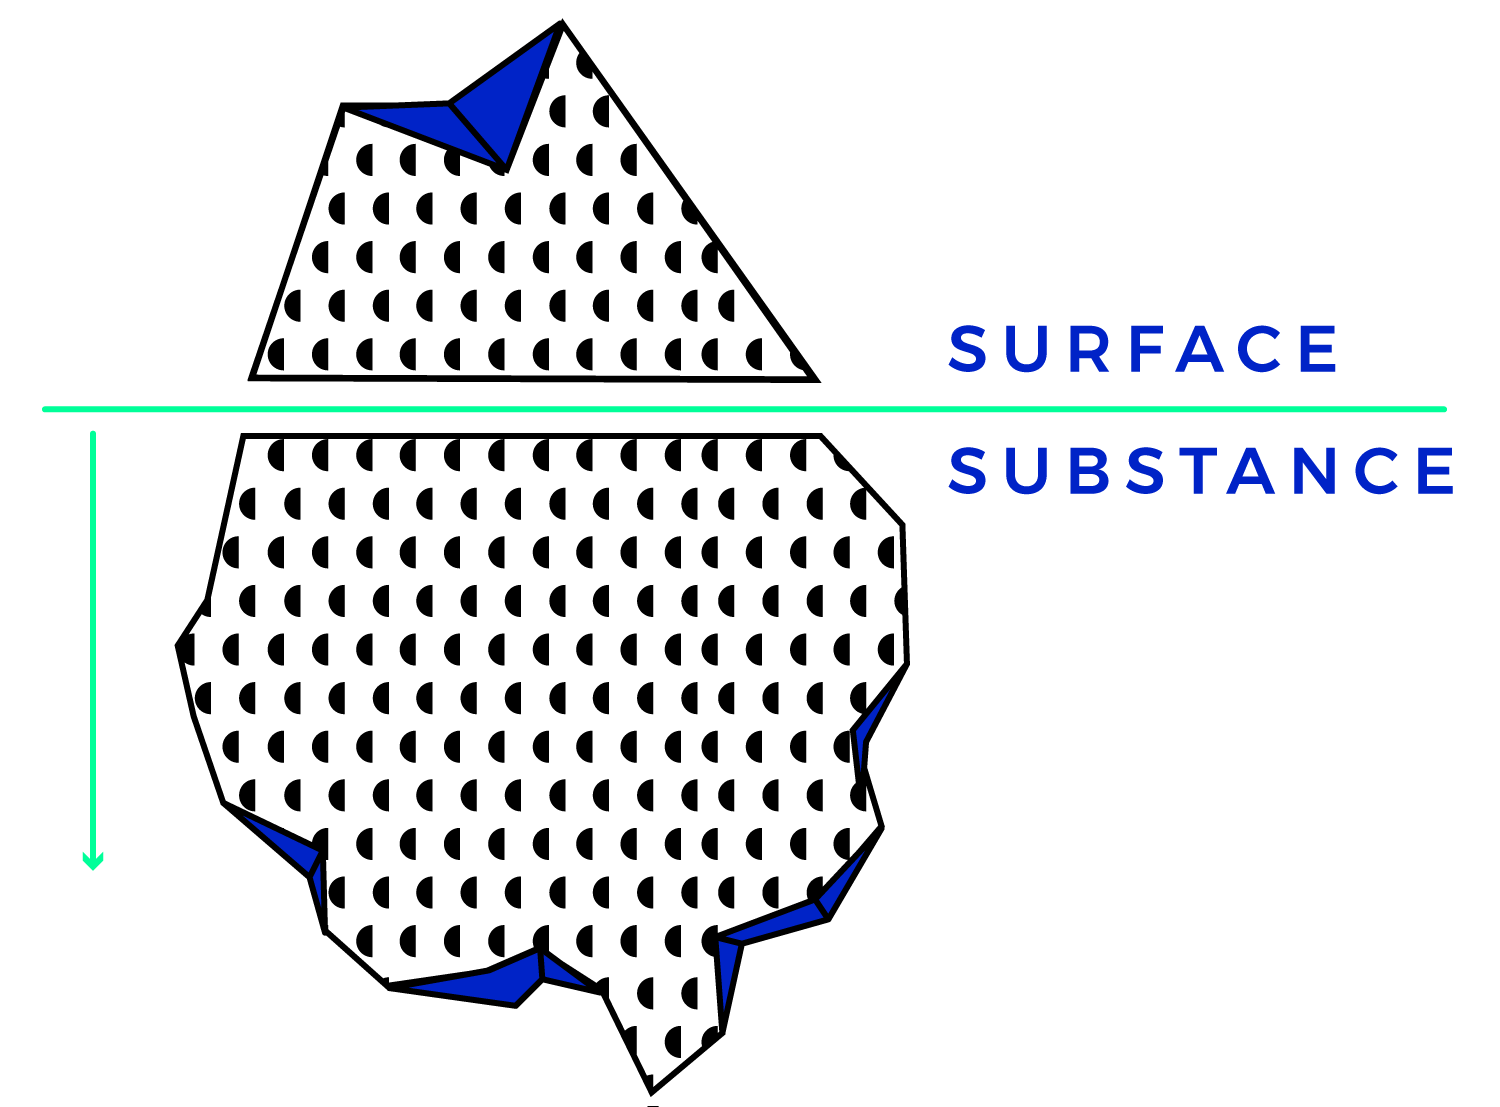 surfacesubstance.png